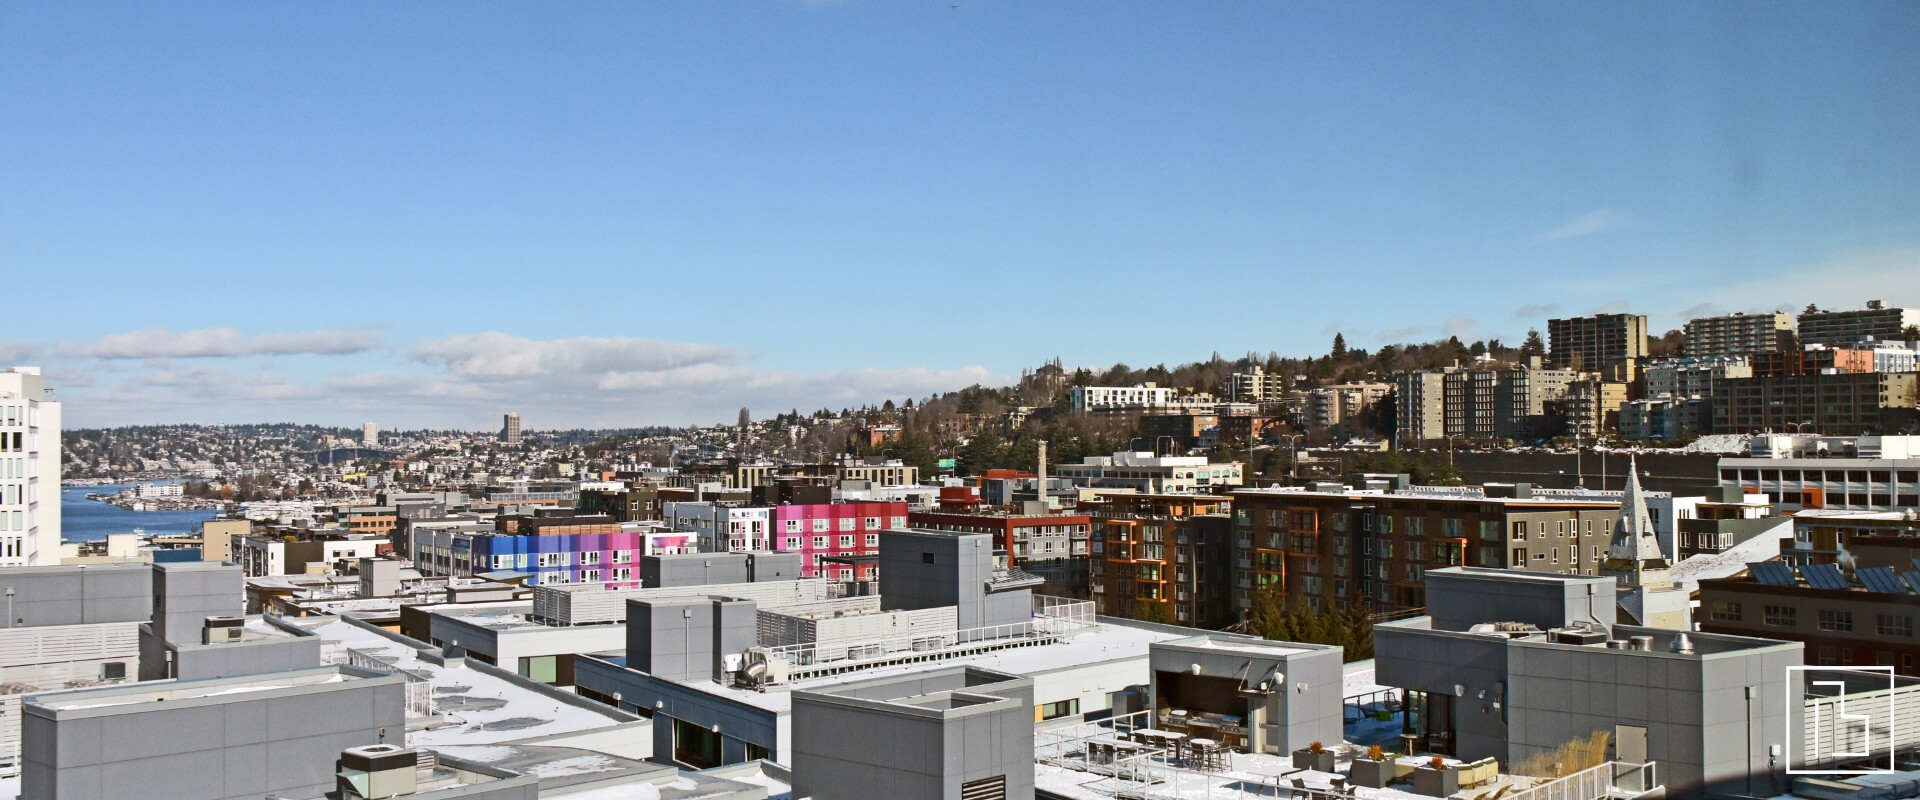 Seattle Mandatory Housing Affordability Seattle Neighborhood - Beachworks LLC